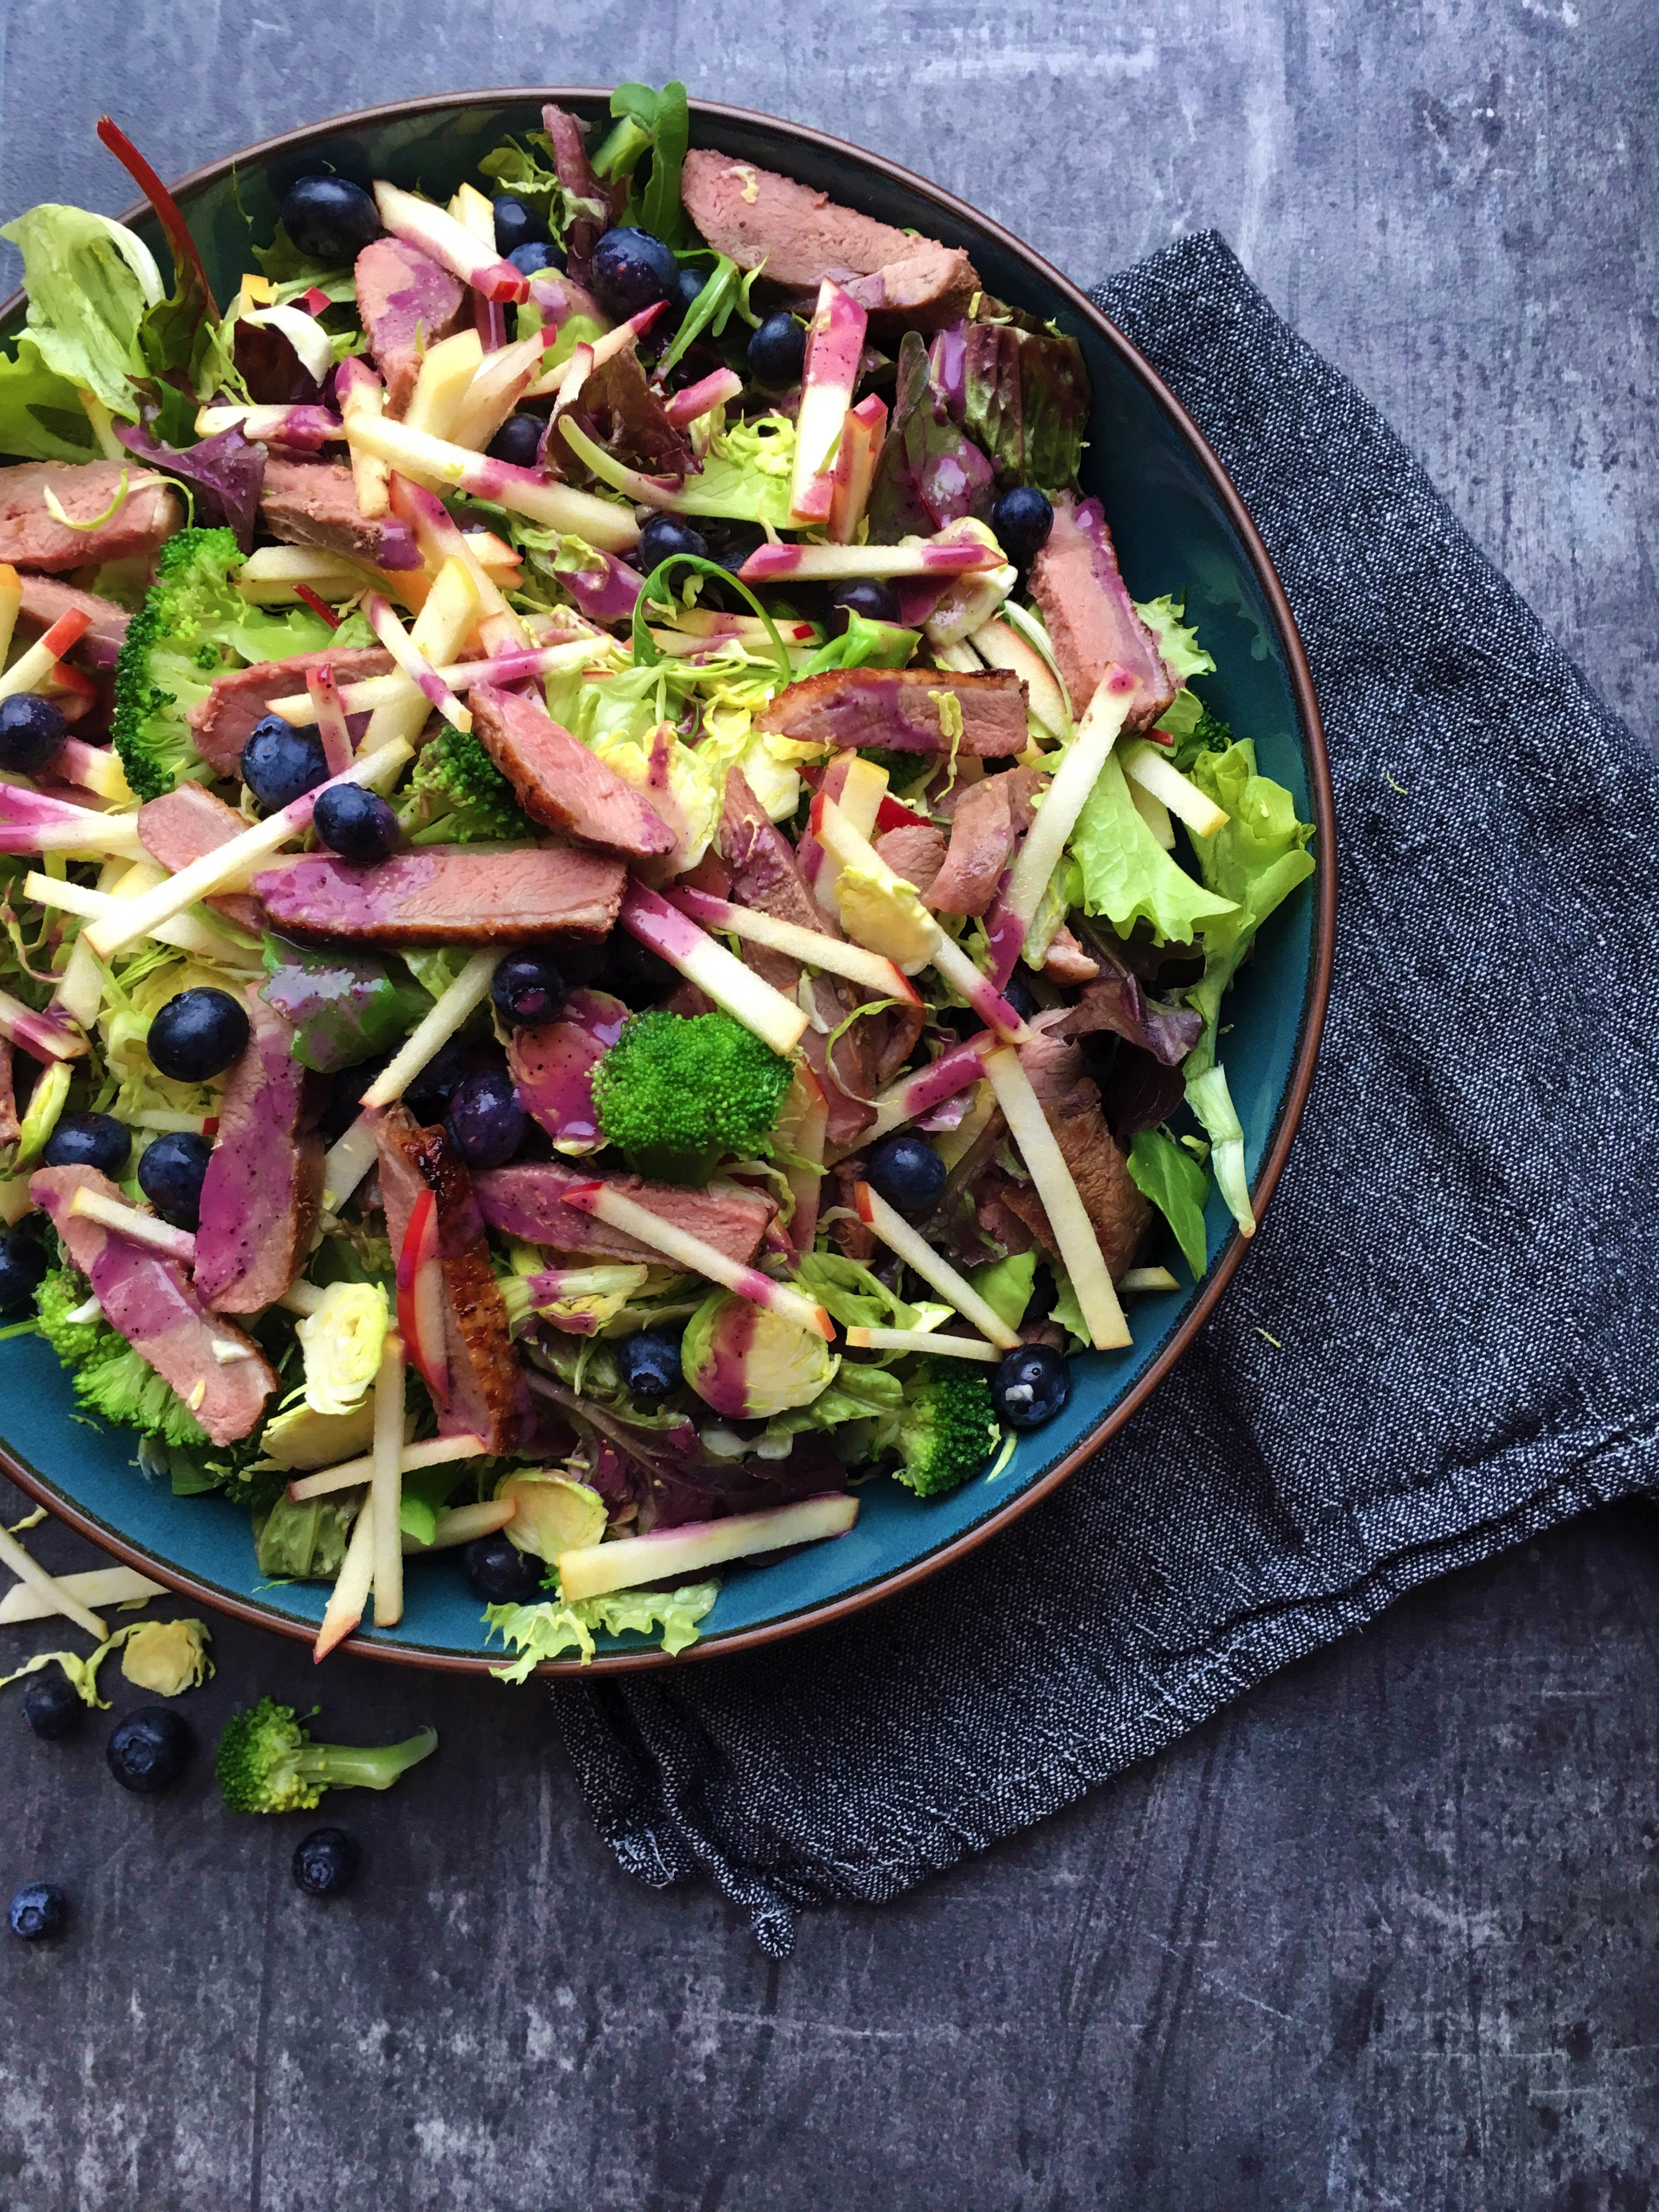 Histamine Friendly Blueberry Duck Salad with Blueberry Salad Dressing